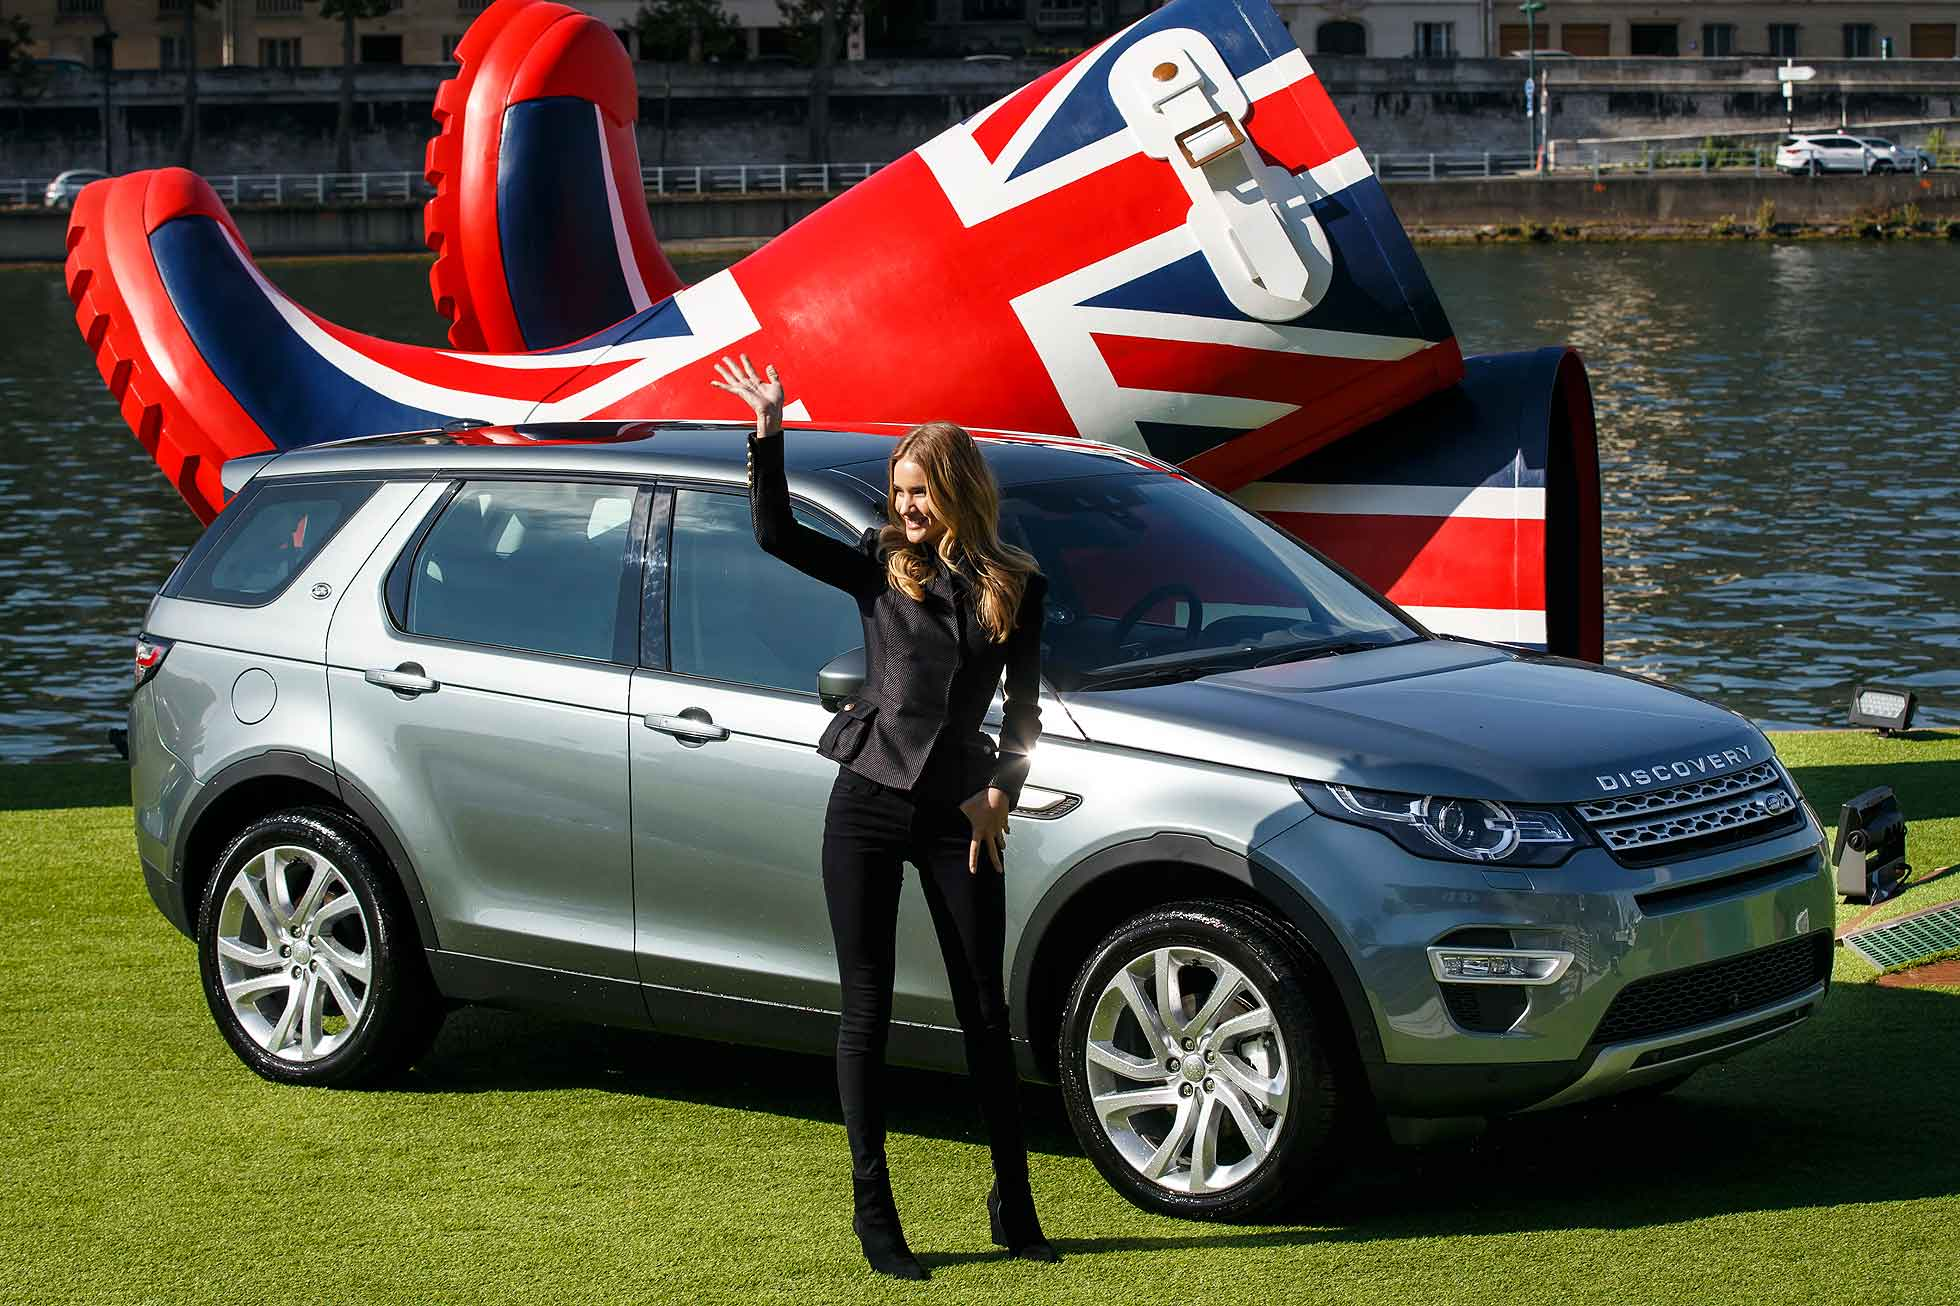 The Land Rover Discovery Sport was revealed by supermodel Rosie Huntington-Whiteley